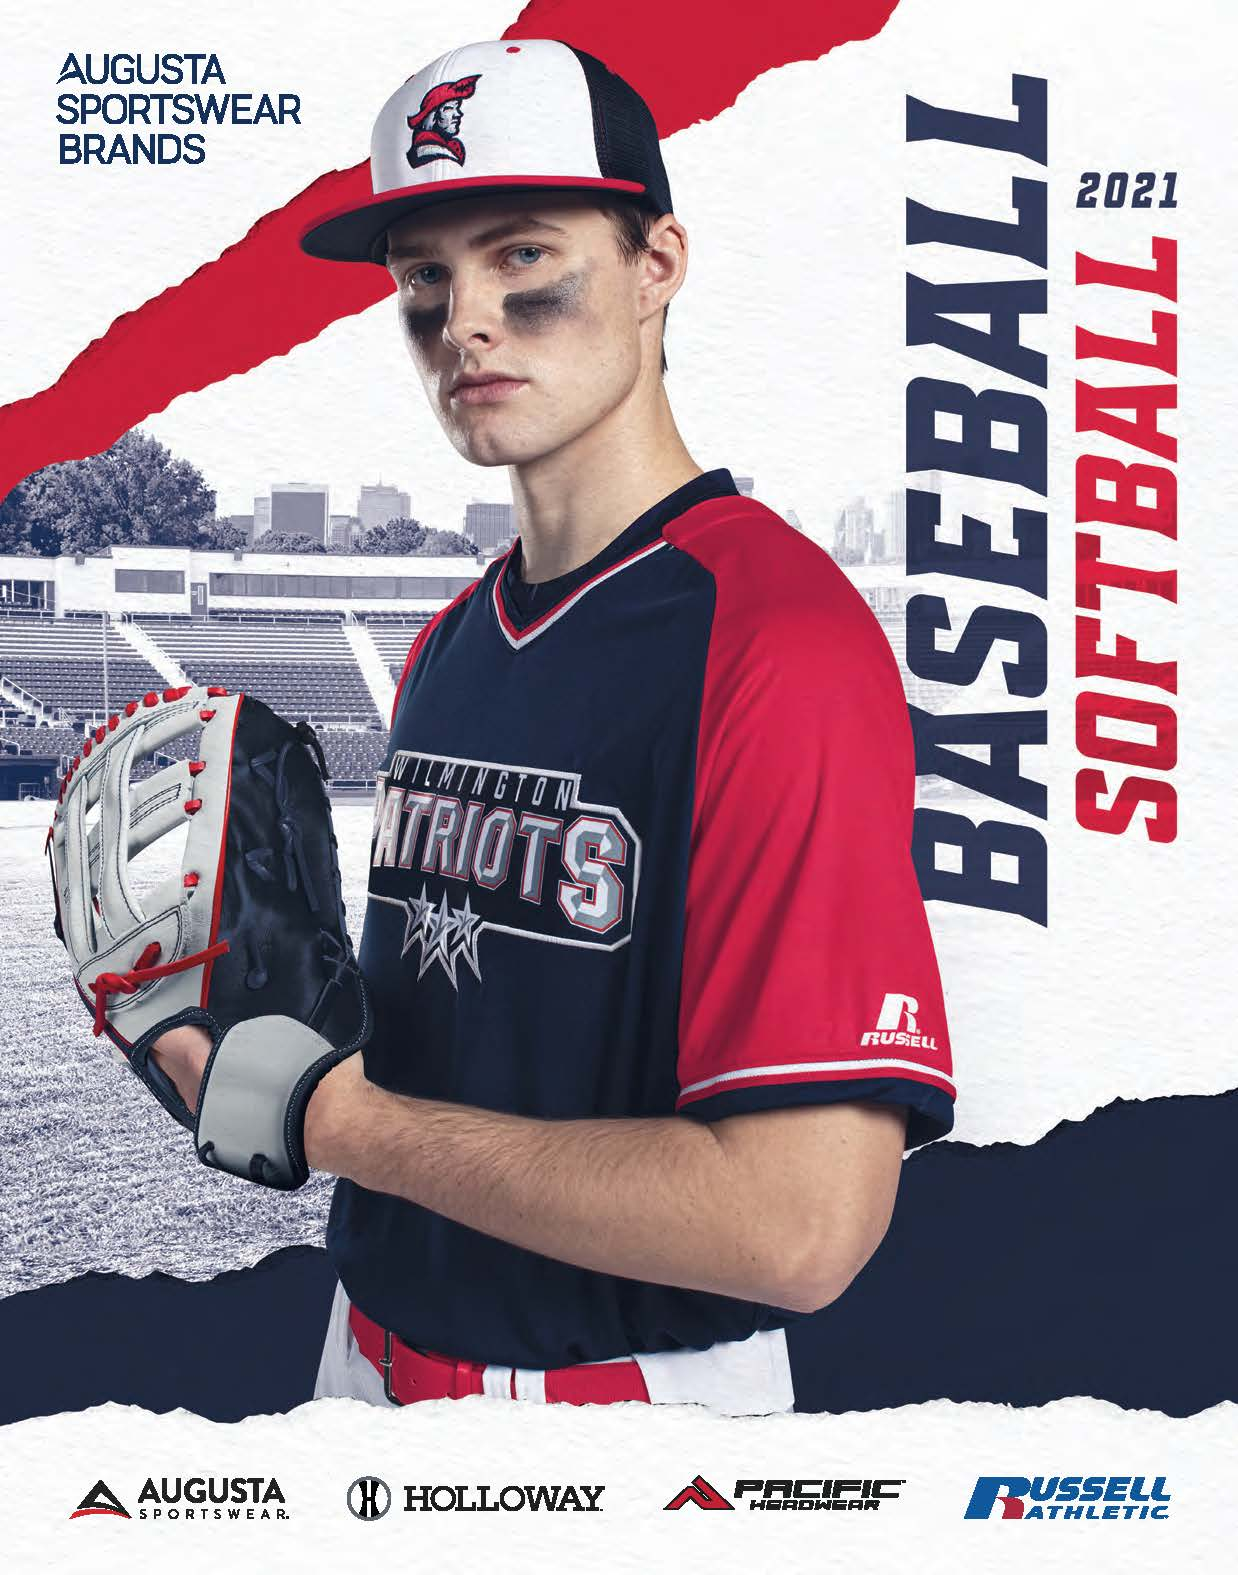 baseball softball catalog 2021